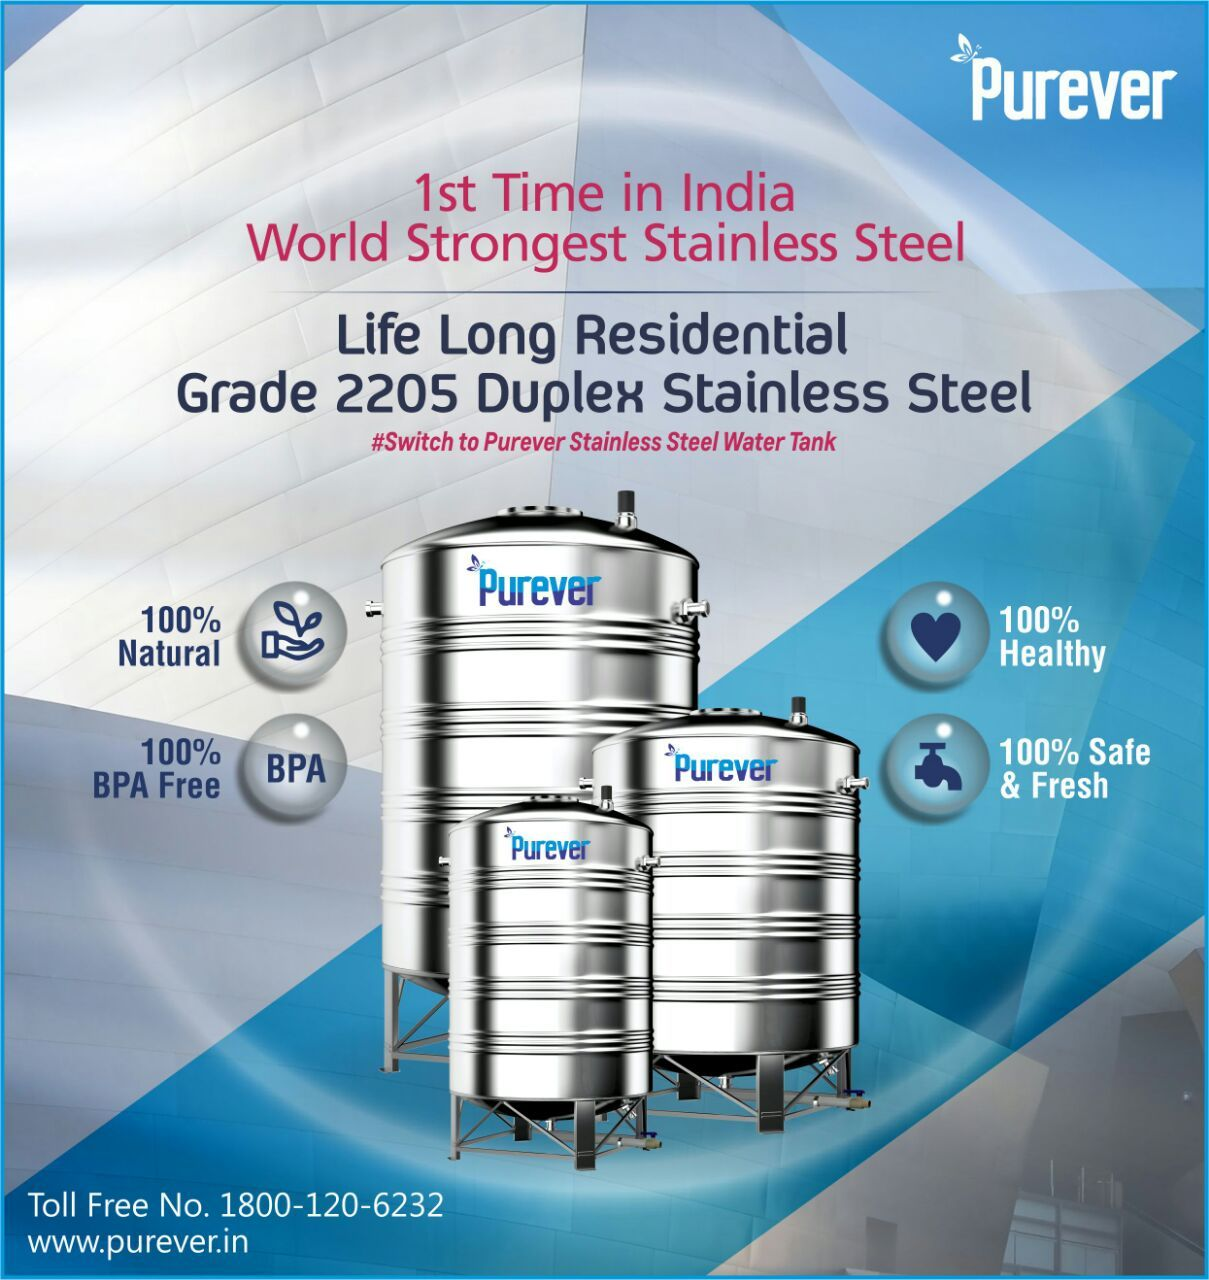 Ist Time In India World Strongest Stainless Steel Purever Life Long Residential Grade Switch To Purever Wa Steel Water Tanks Water Tank Stainless Steel